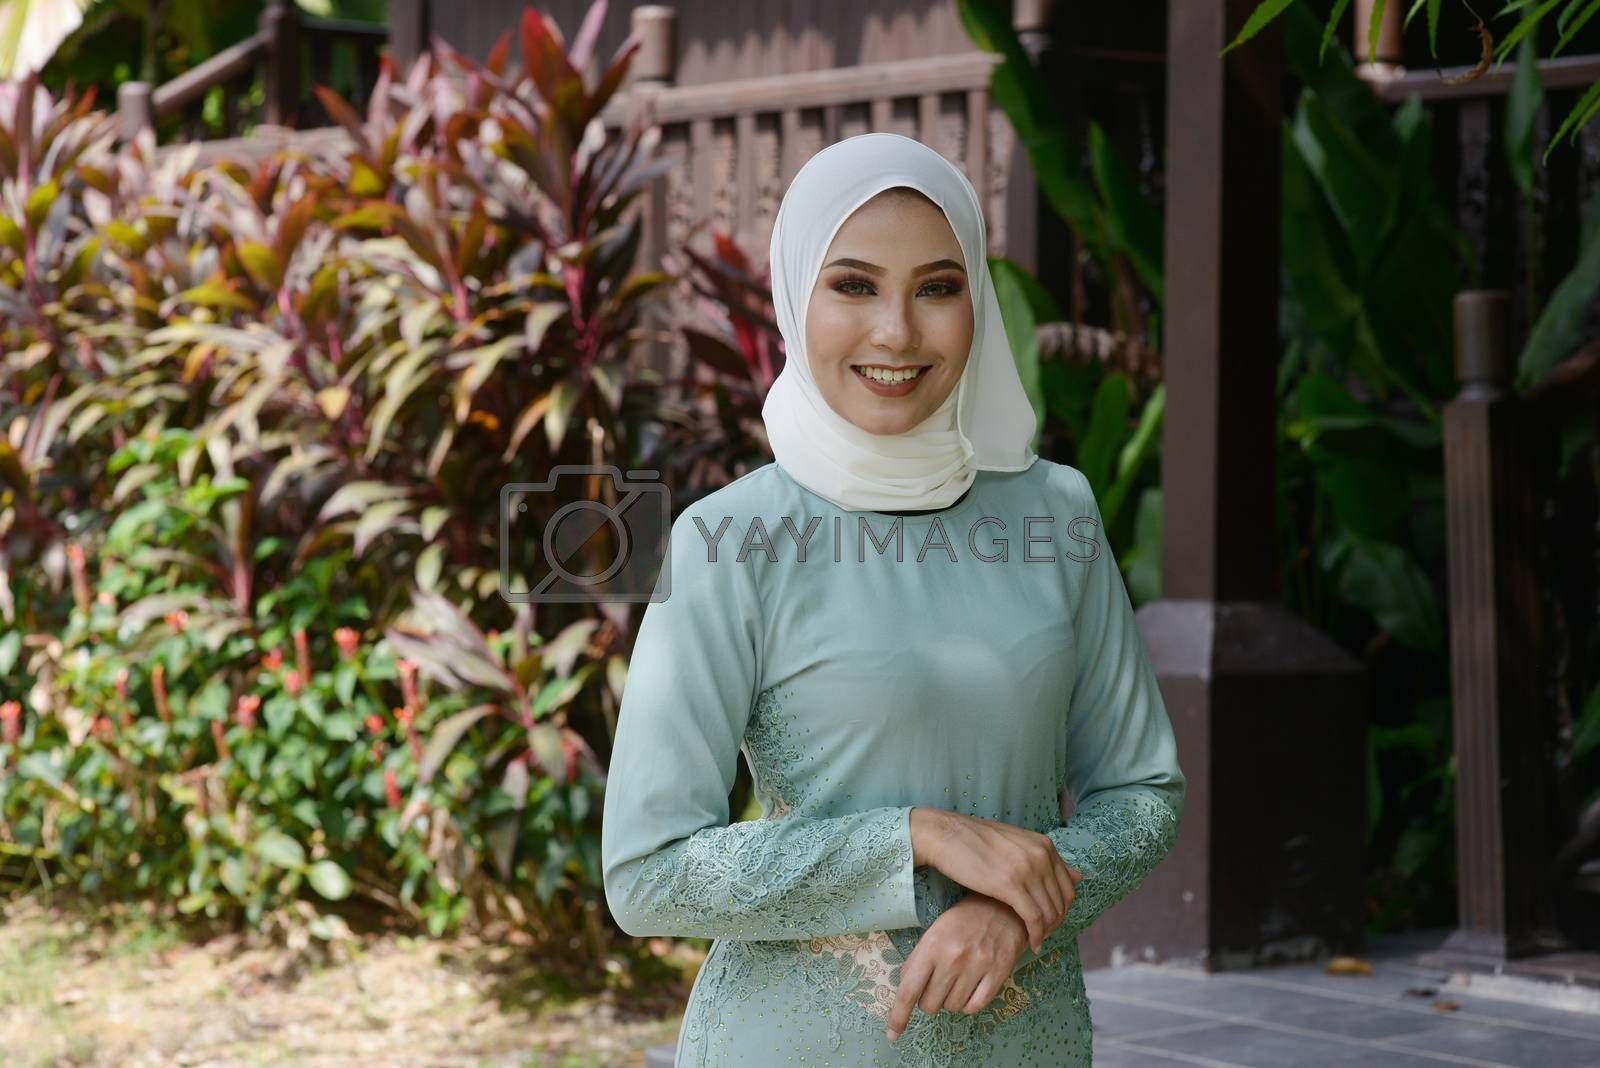 Portrait of Muslim girl in hijab, smiling at outdoor, traditional wooden house background.